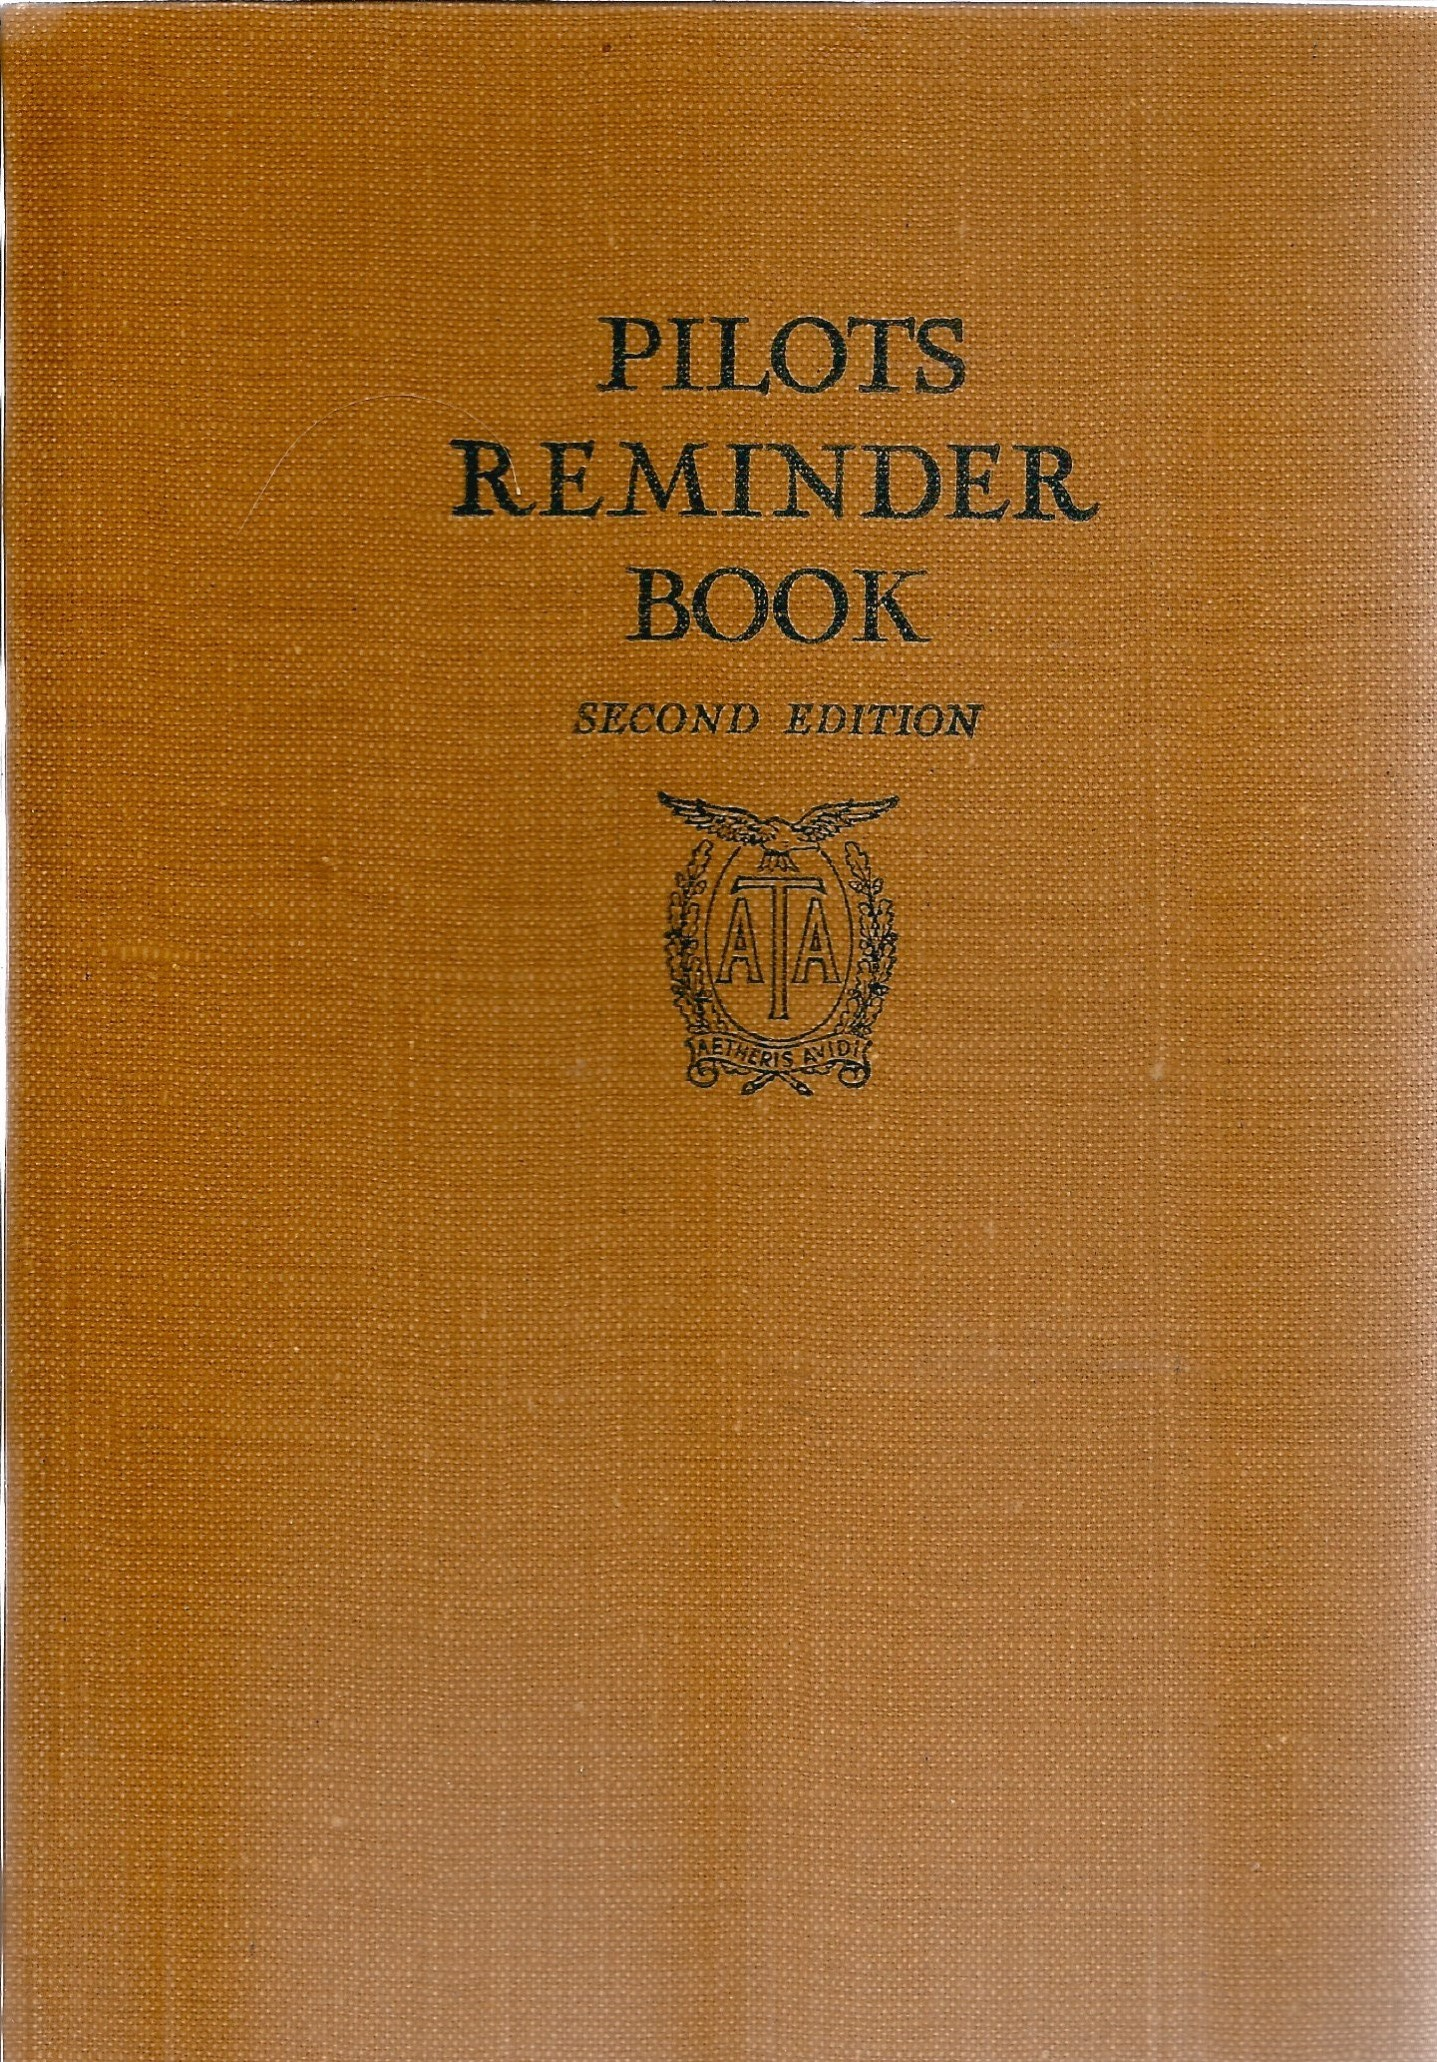 J. Arnold V. Watson. Pilots Reminders Book 2nd Edition. Hardback book, signed by the author.